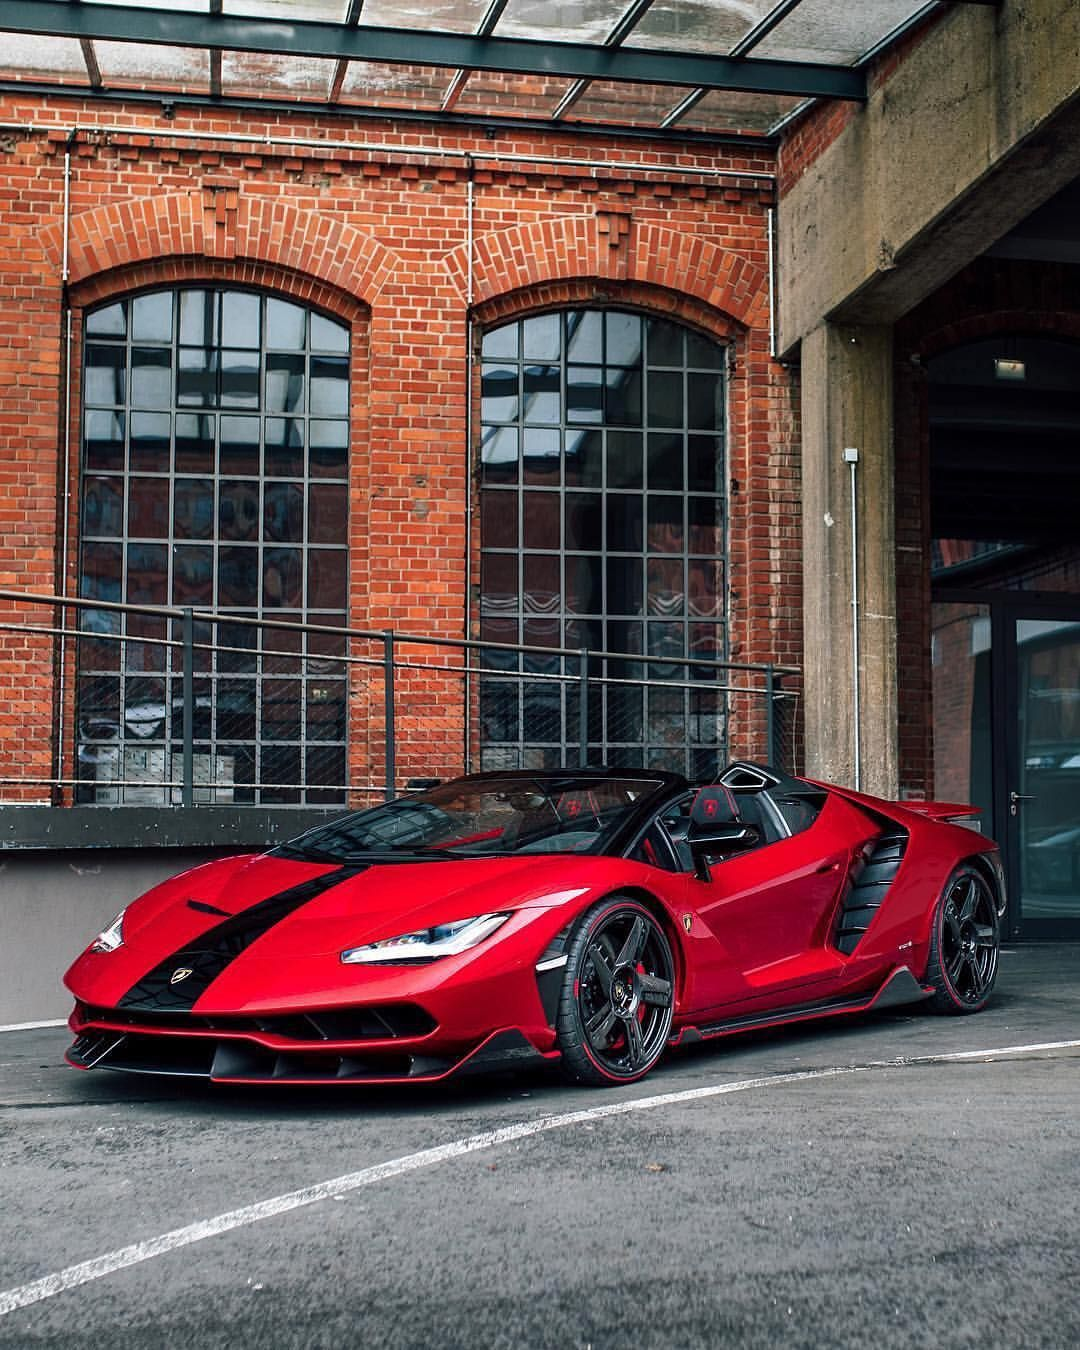 Rosso Efesto Centenario Roadster Photos By Alexpenfold Owner